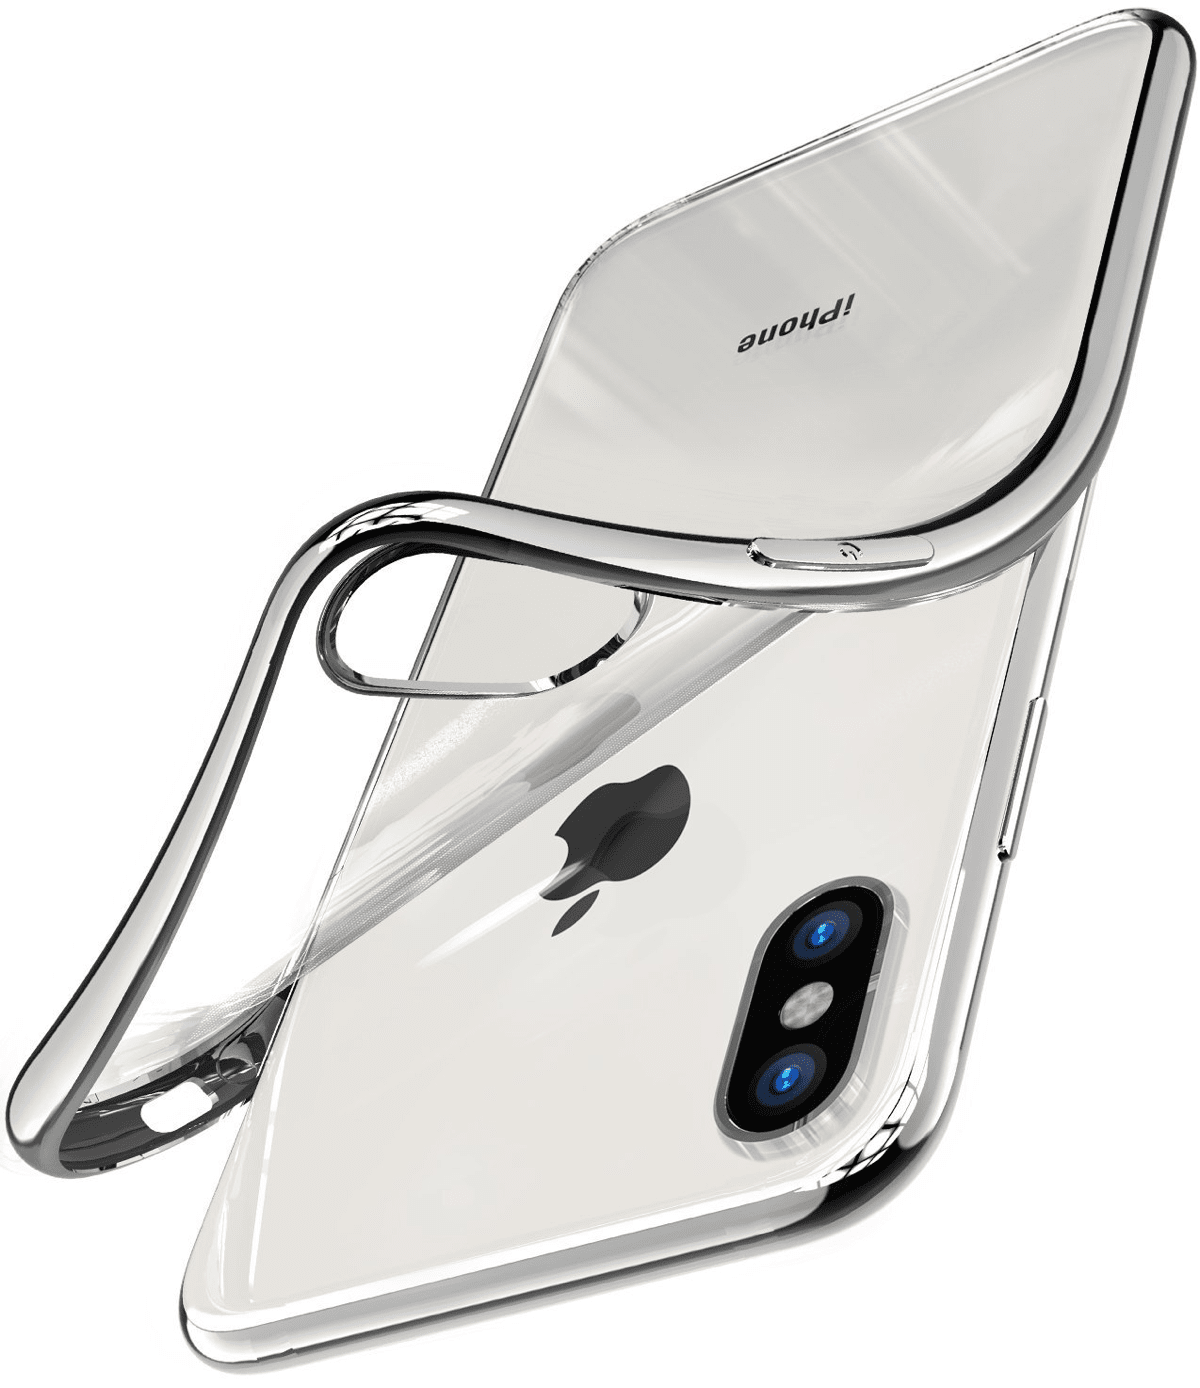 6 Clear iPhone X Cases to Show Off Your Purchase - The Mac